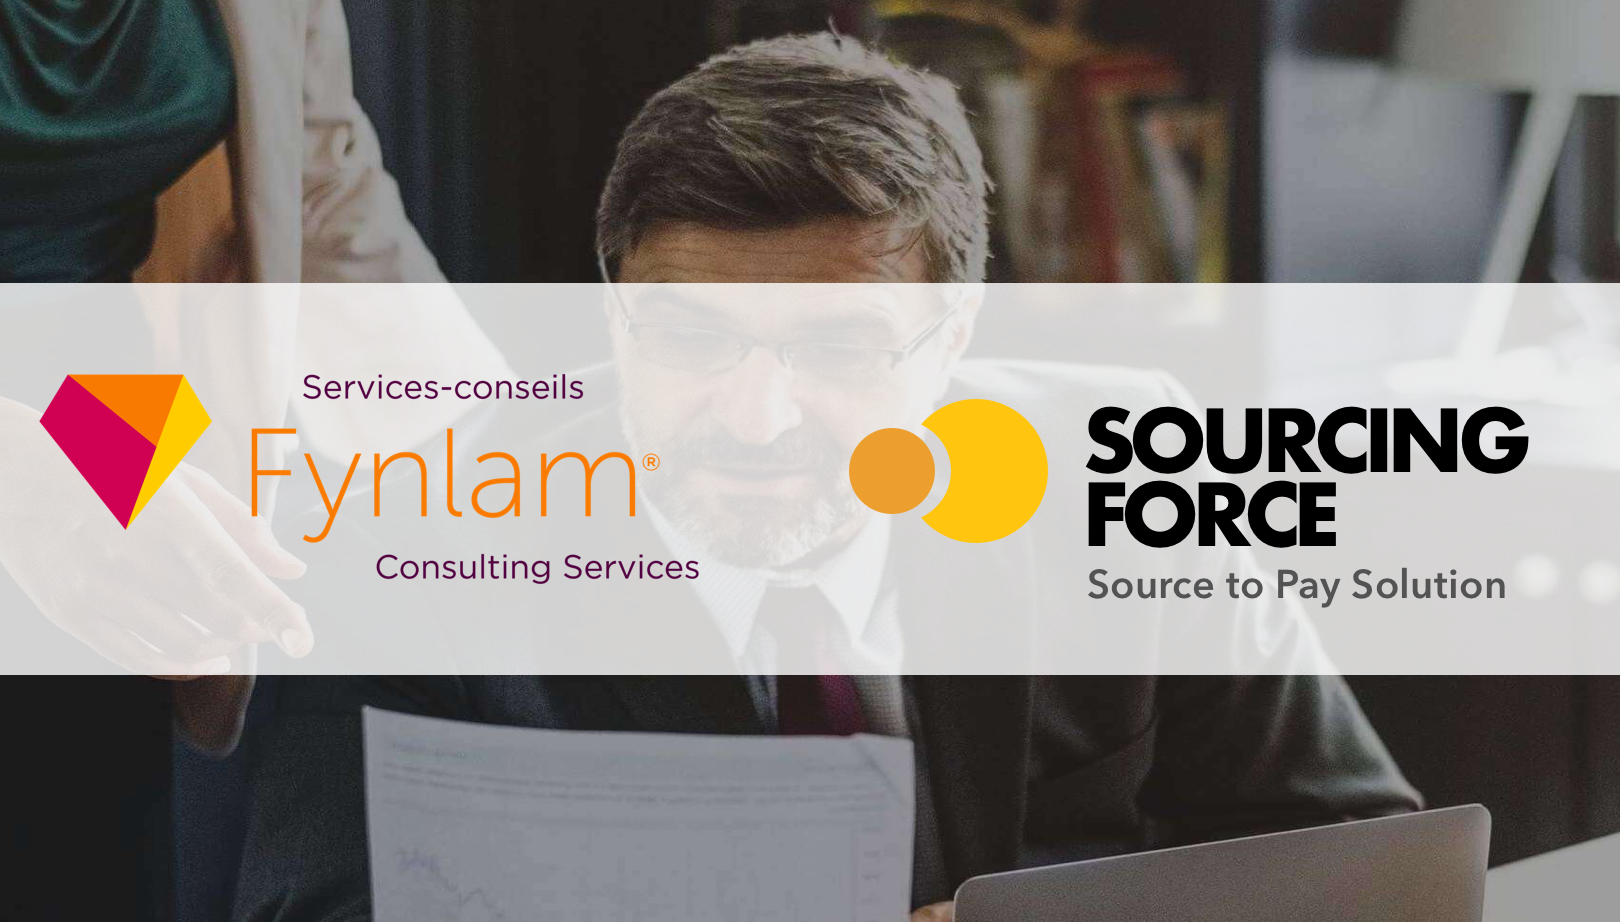 sourcing force fynlam